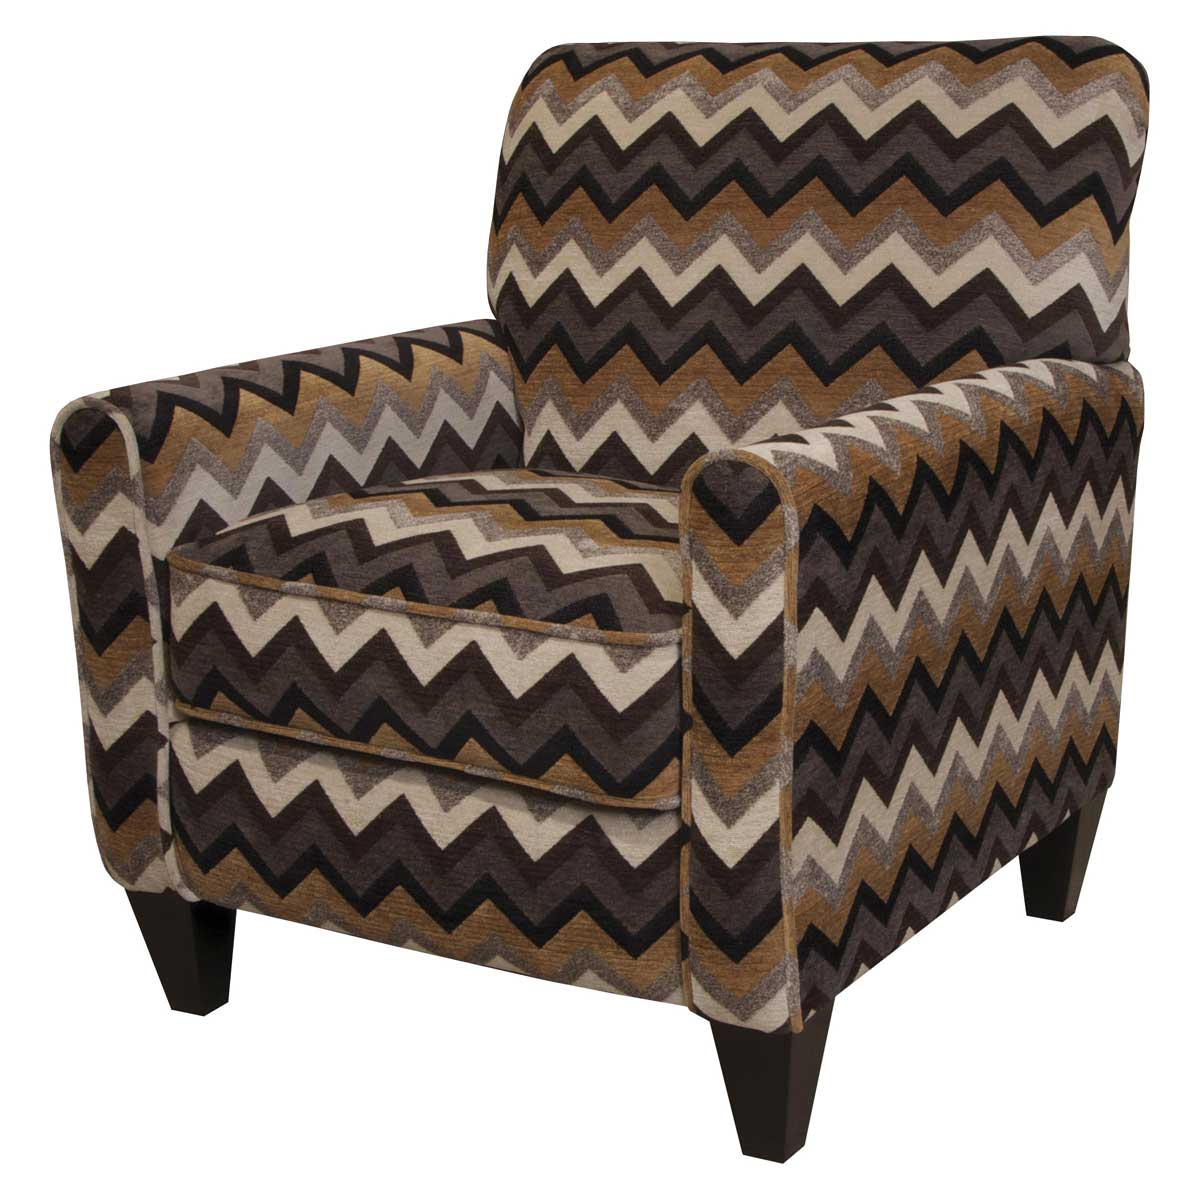 Jackson Zachary Accent Chair - Tobacco